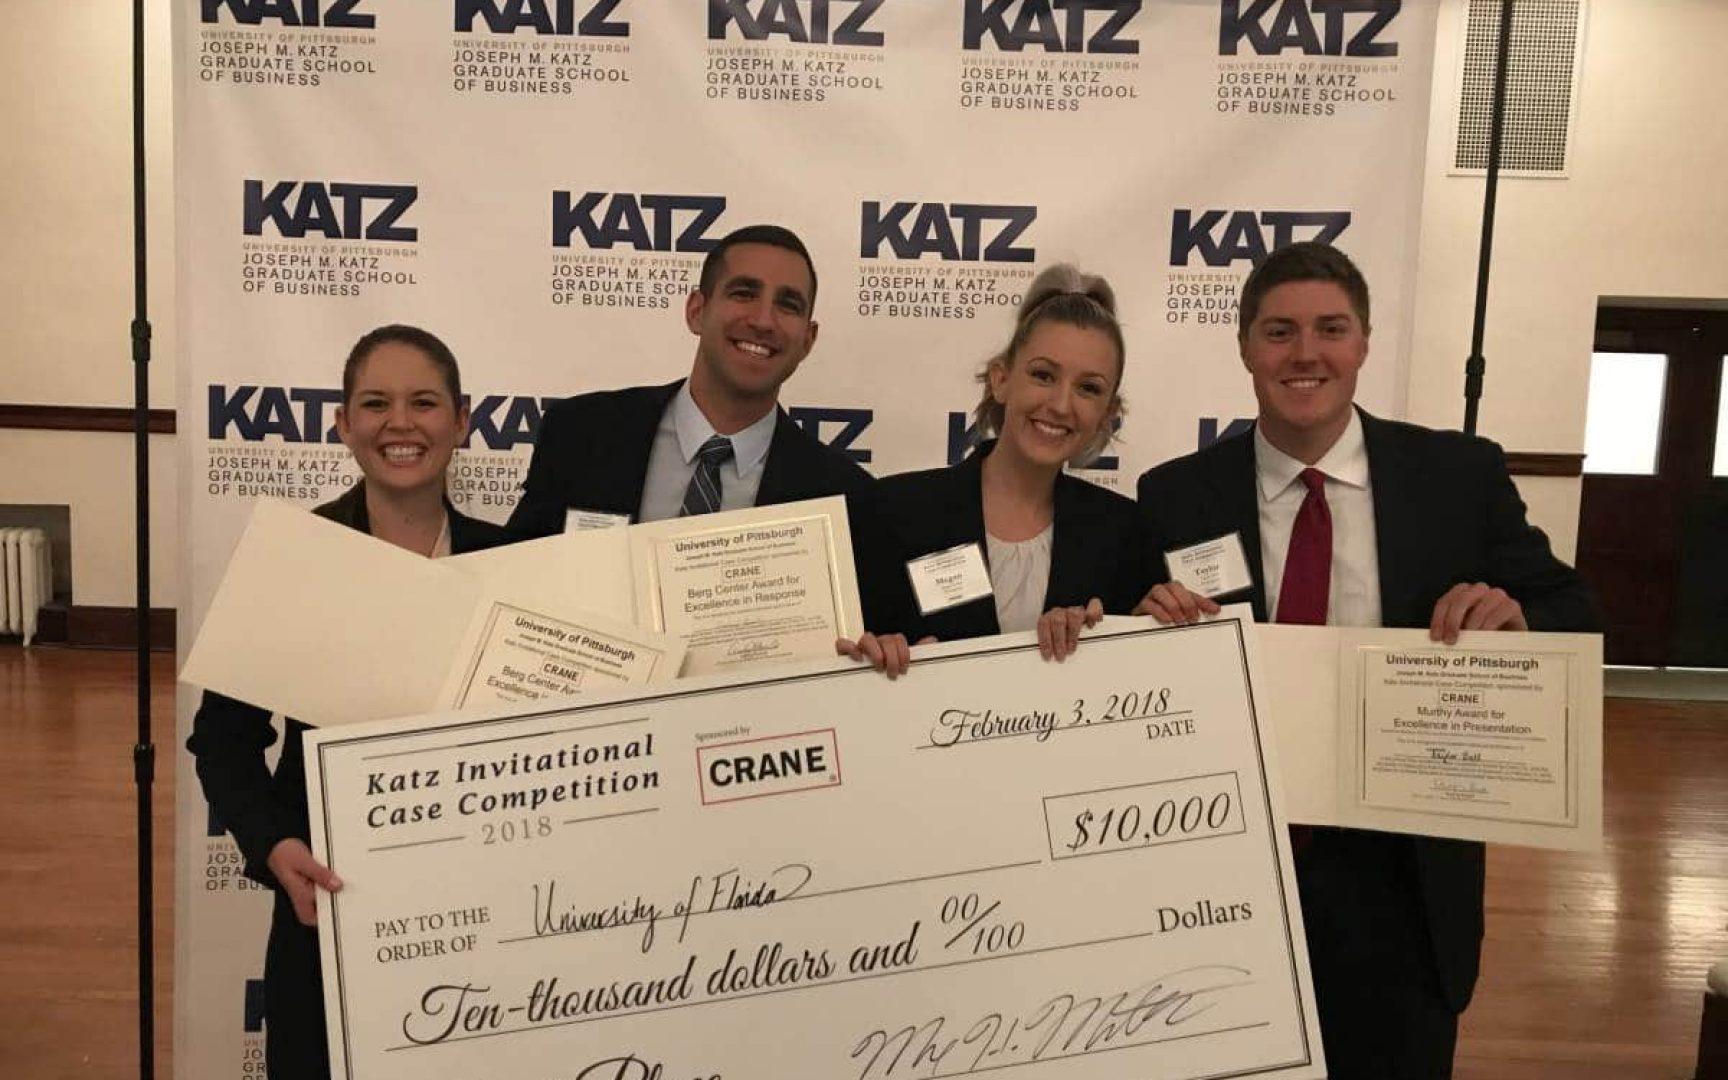 Uf Mba Wins Katz Case Competition Third Year In A Row Warrington